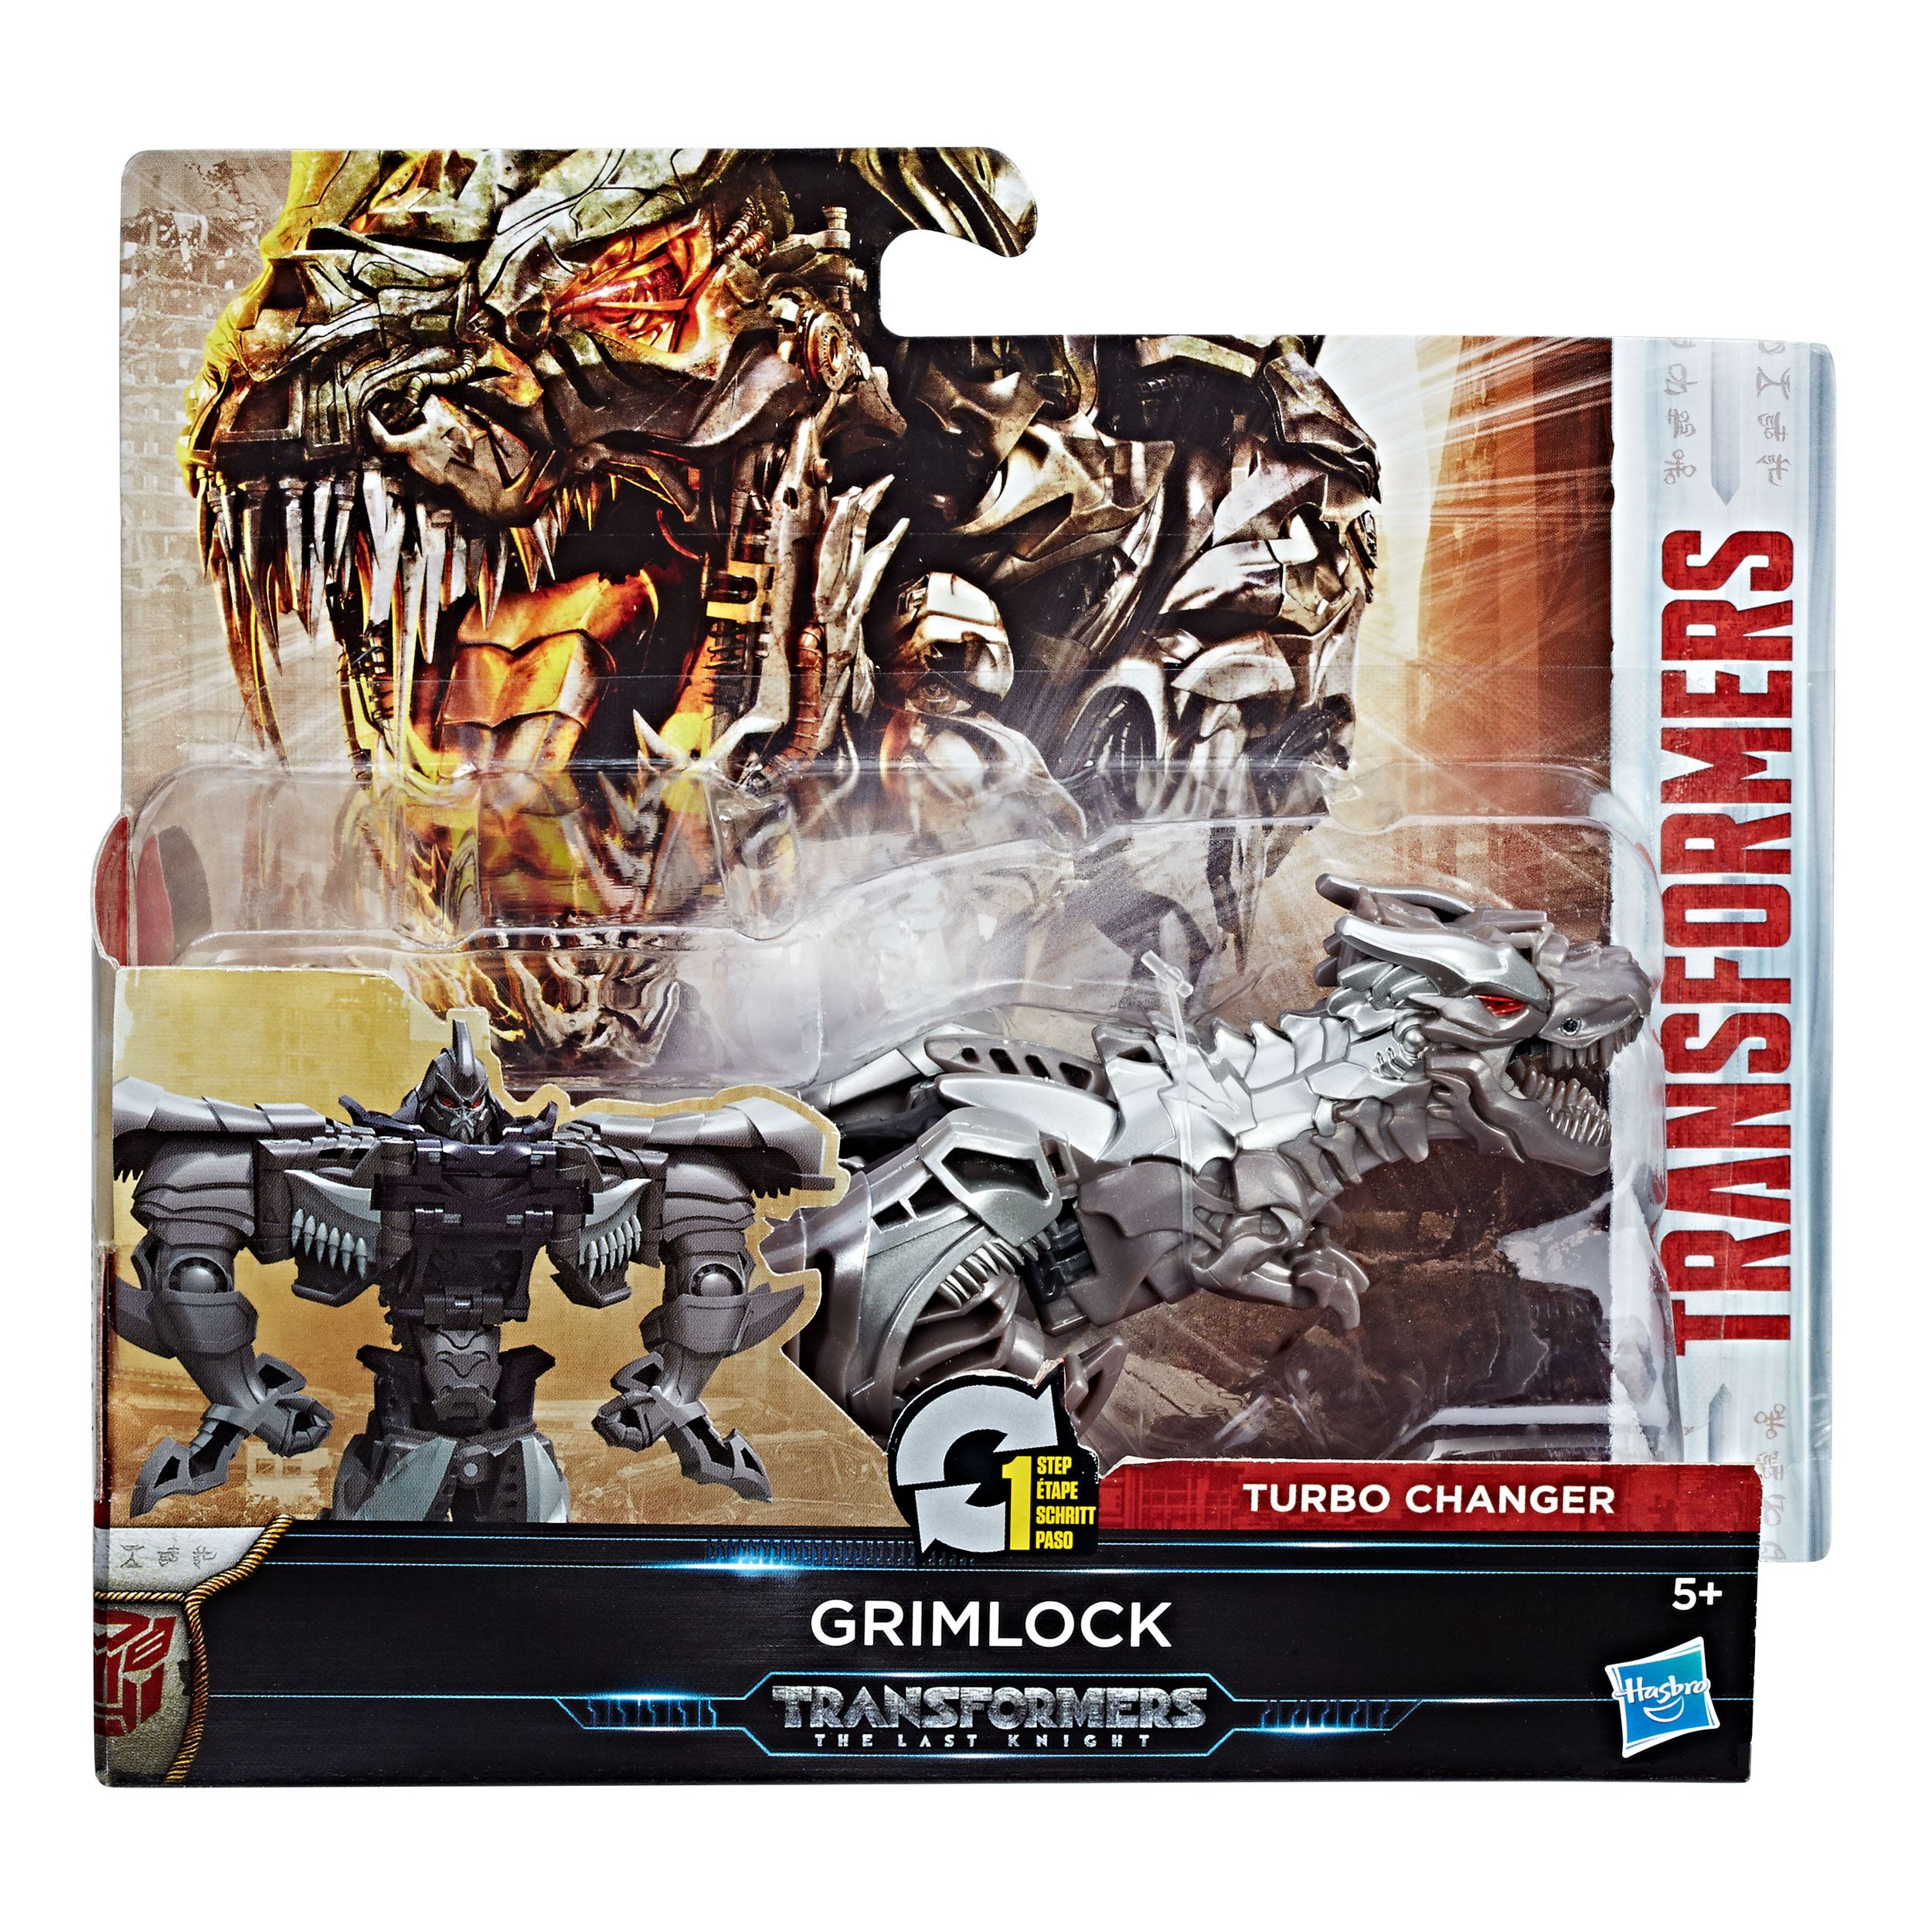 Transformers The Last Knight Turbo Changers Action Figures